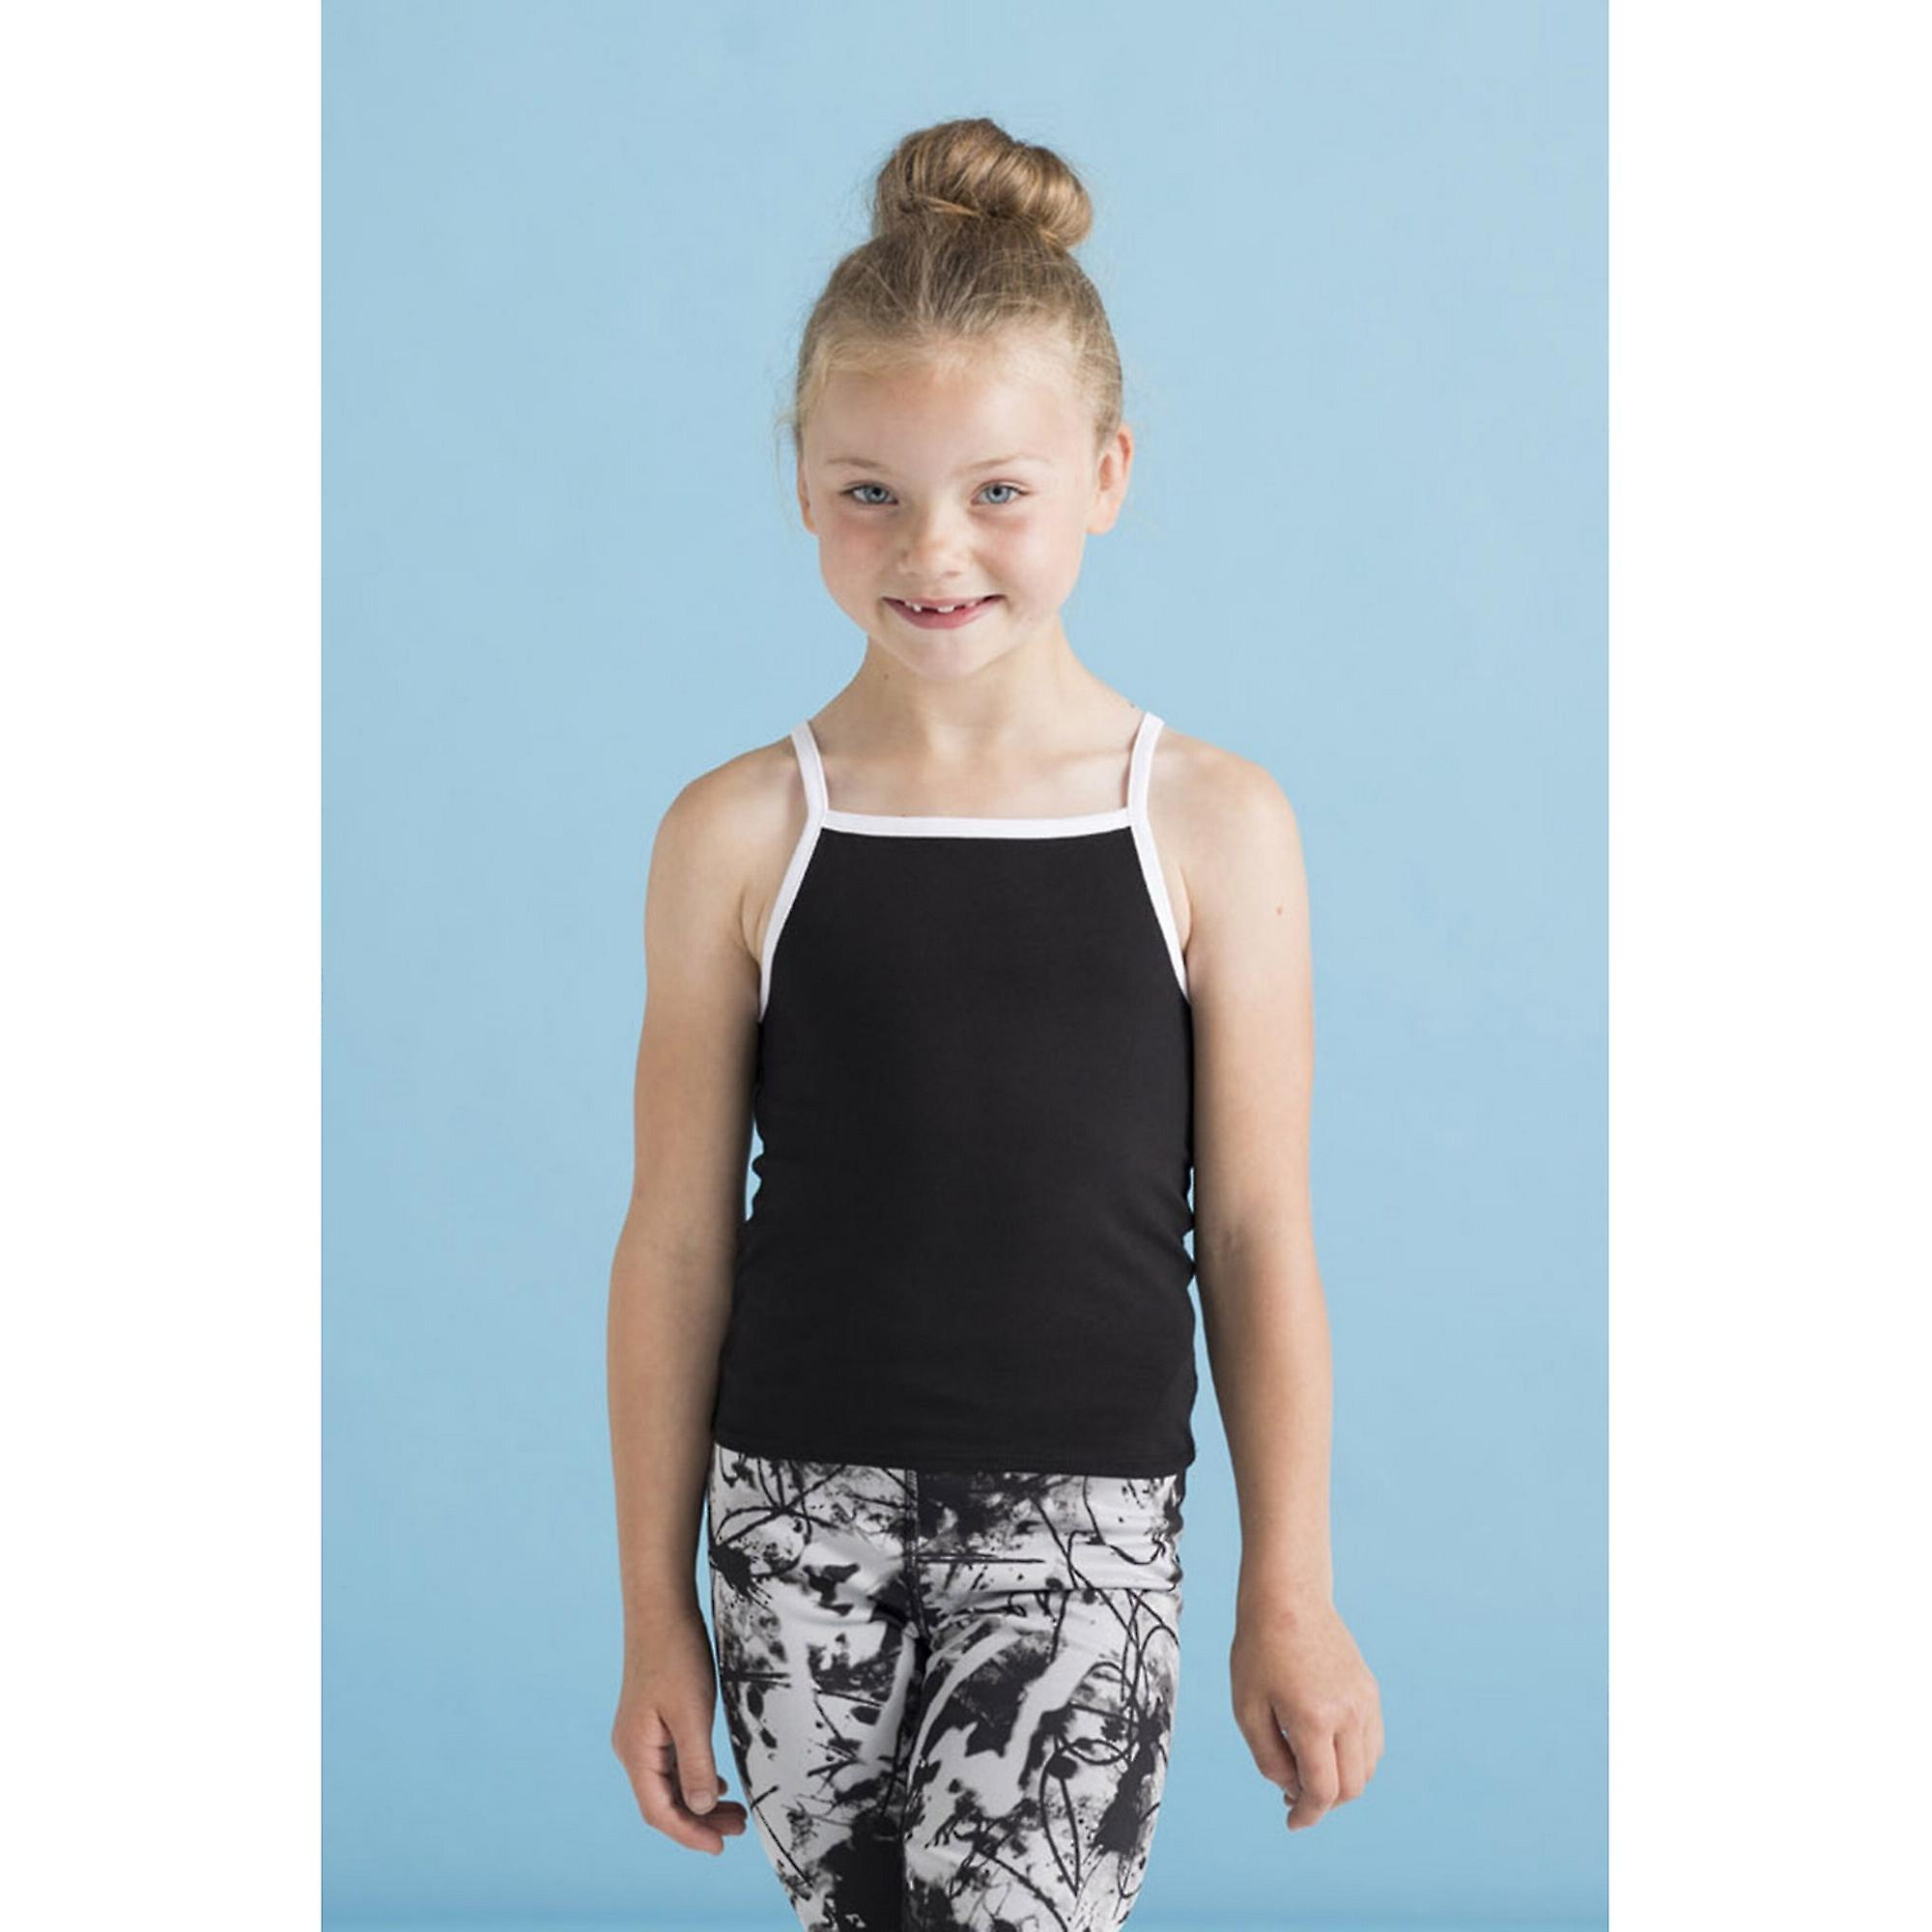 Skinni Fit Chidlrens Girls Feel Good Stretch Contrast Strappy Vest